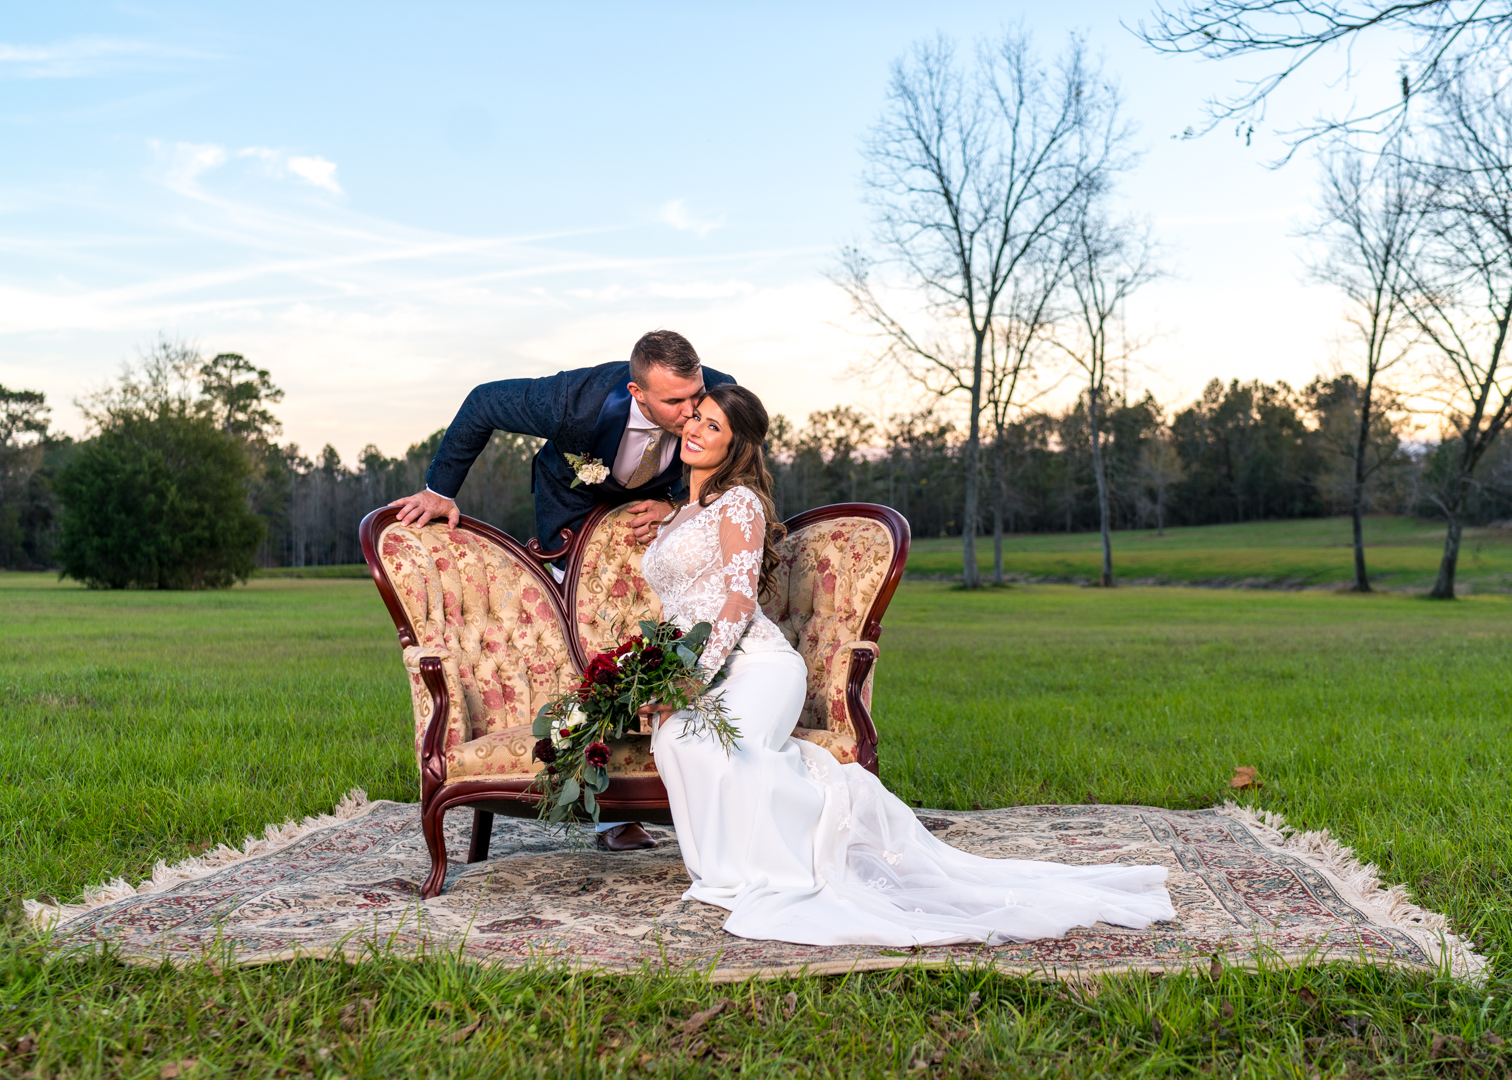 wedding-photographers-pensacola-48.jpg